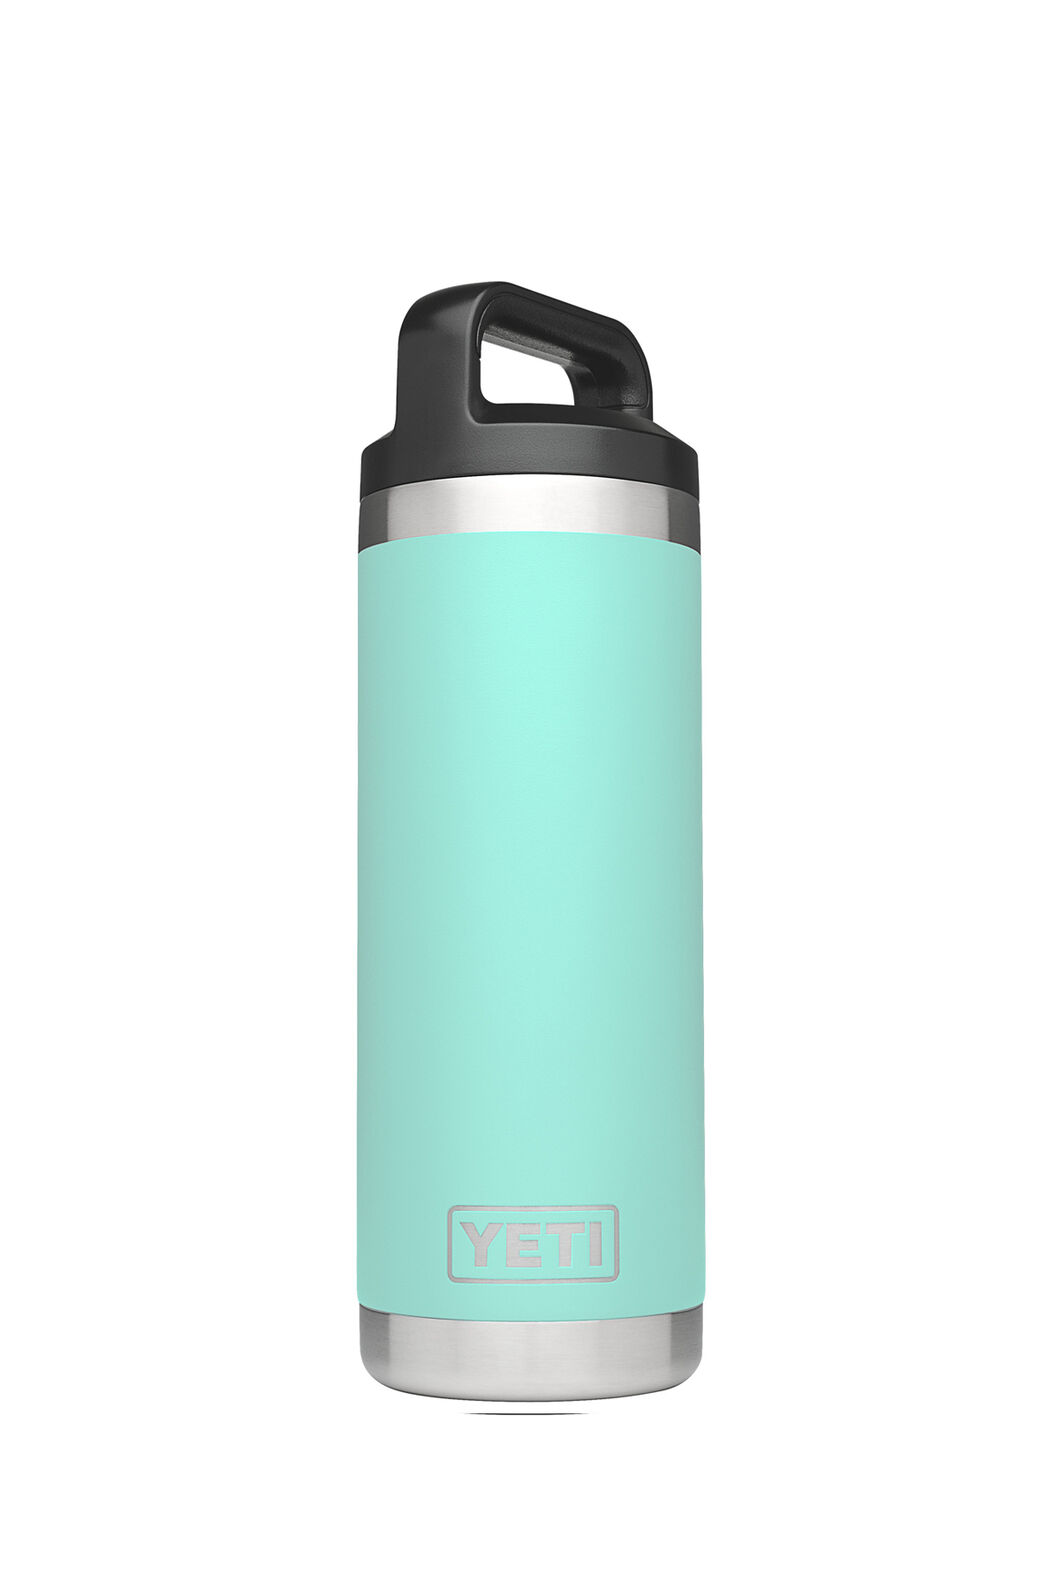 Yeti Rambler Drink Bottle Stainless Steel 18oz, SEAFOAM, hi-res